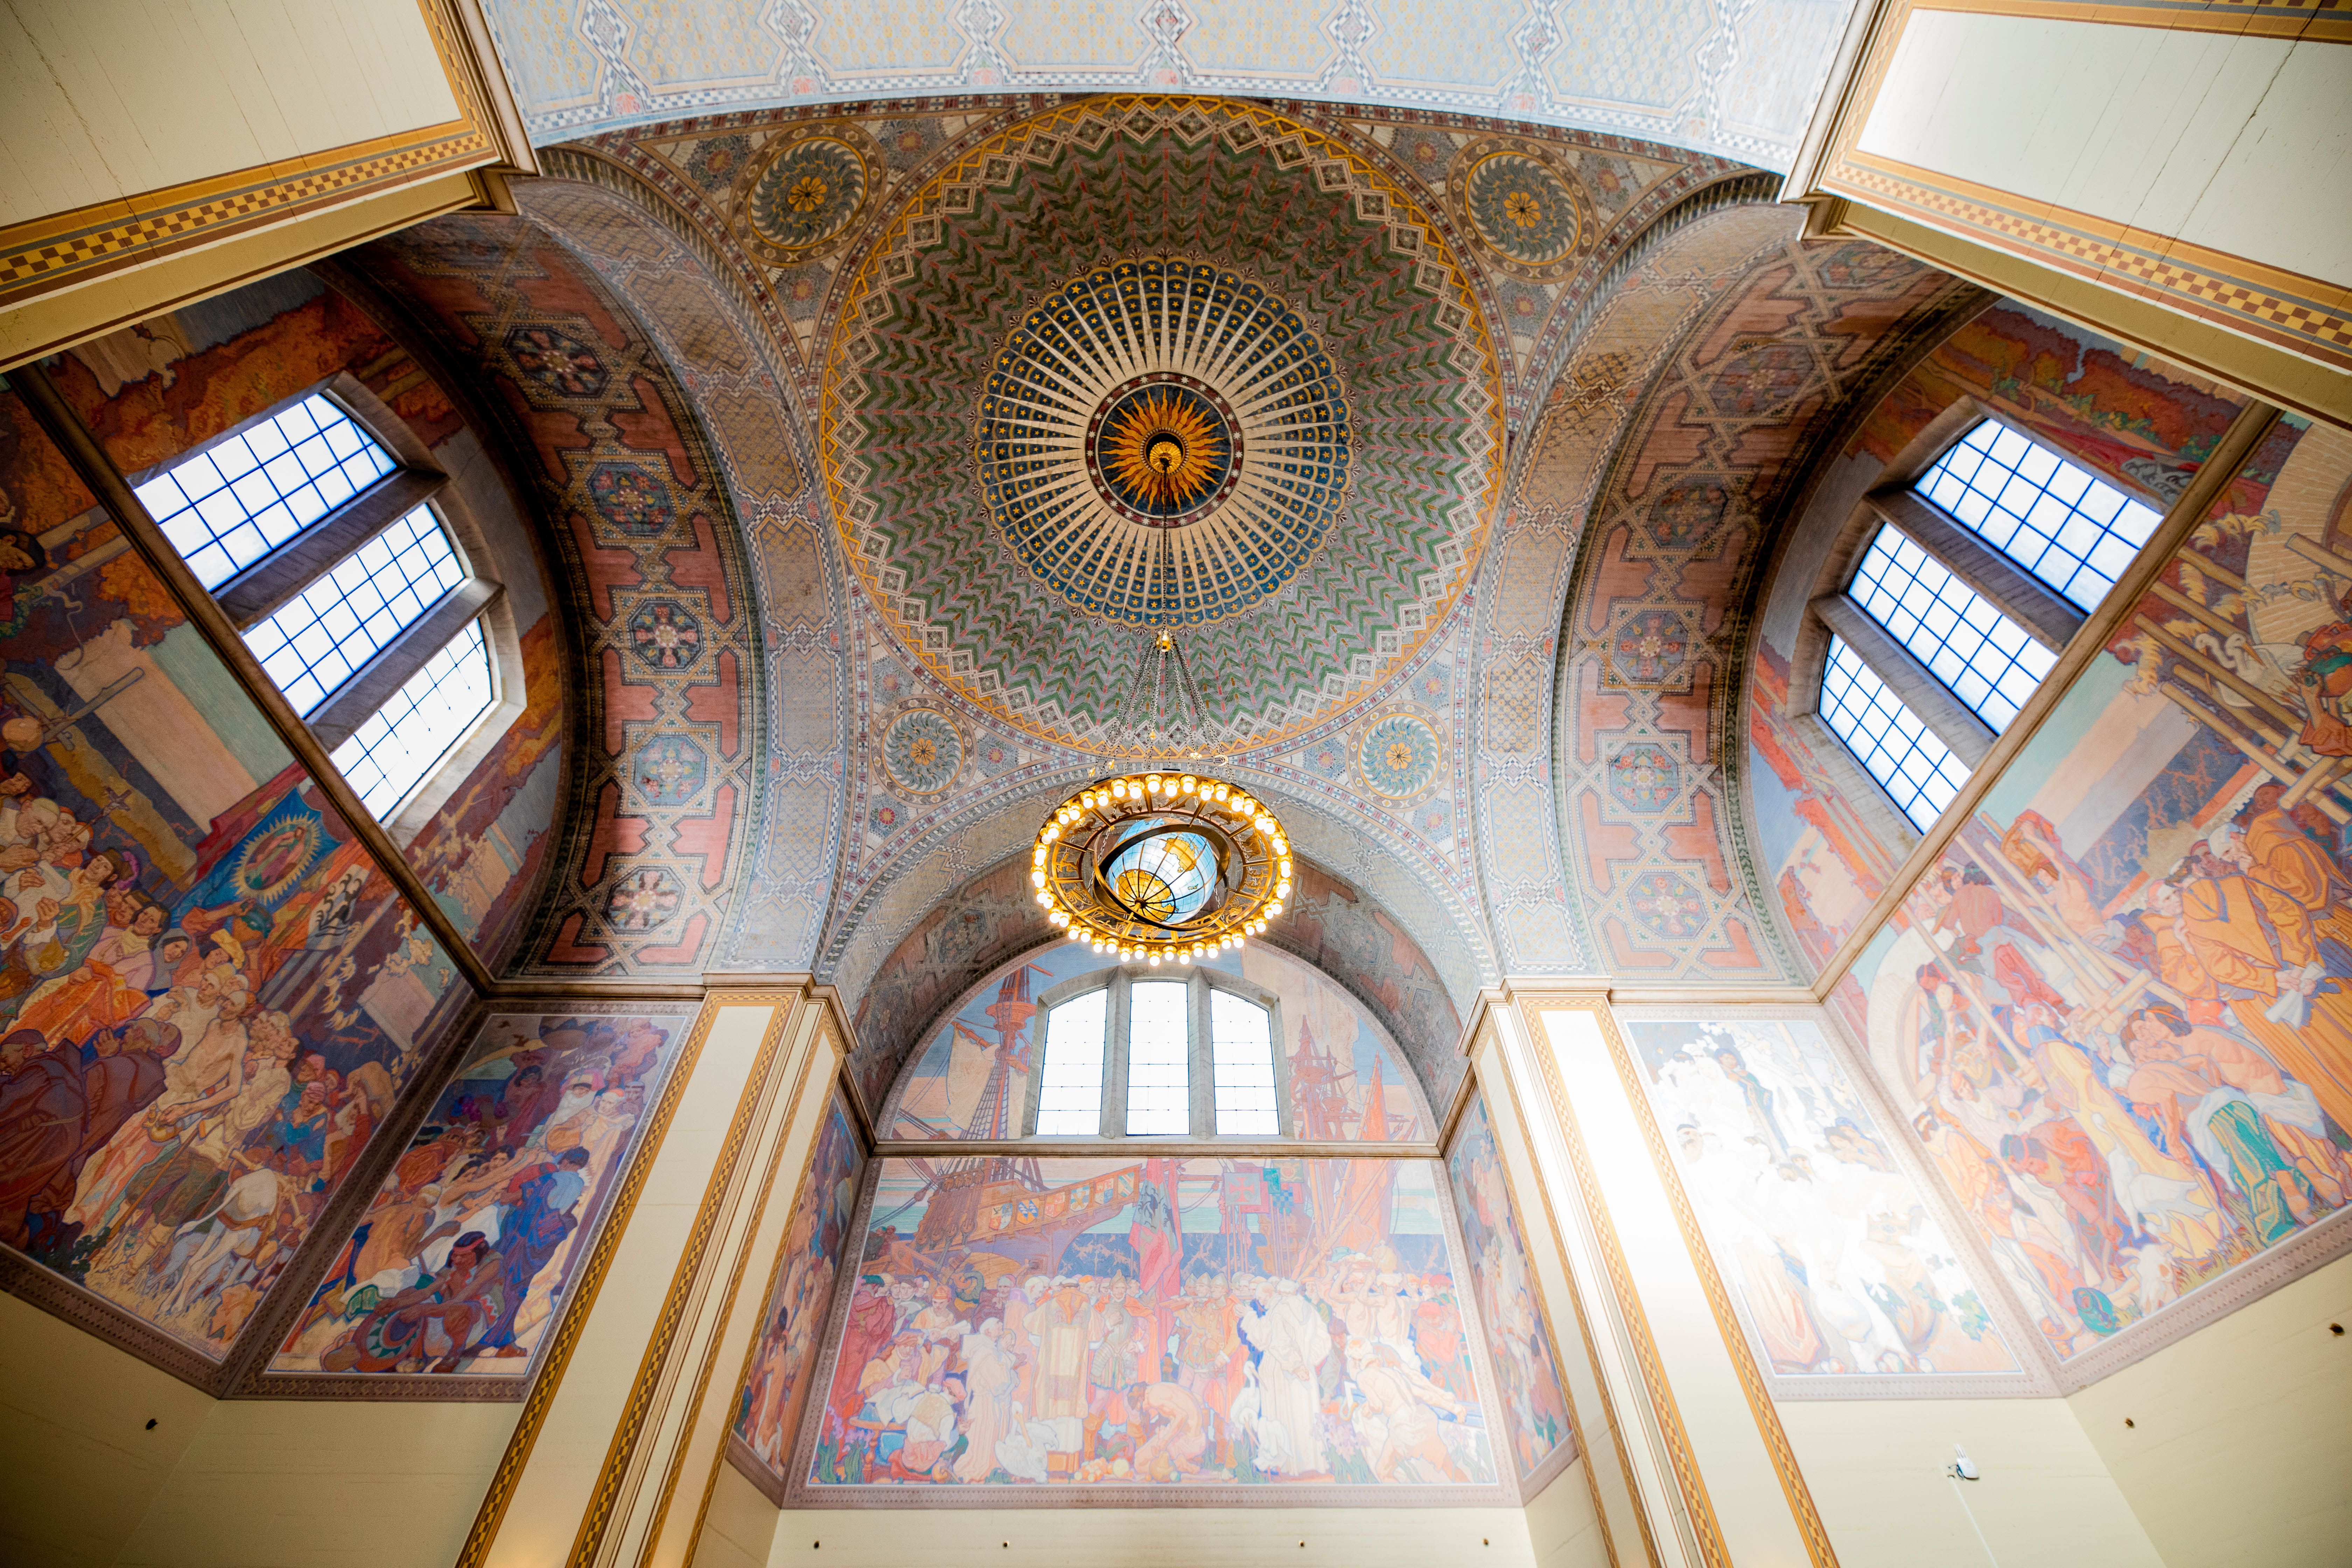 Mural on the ceiling of the central library